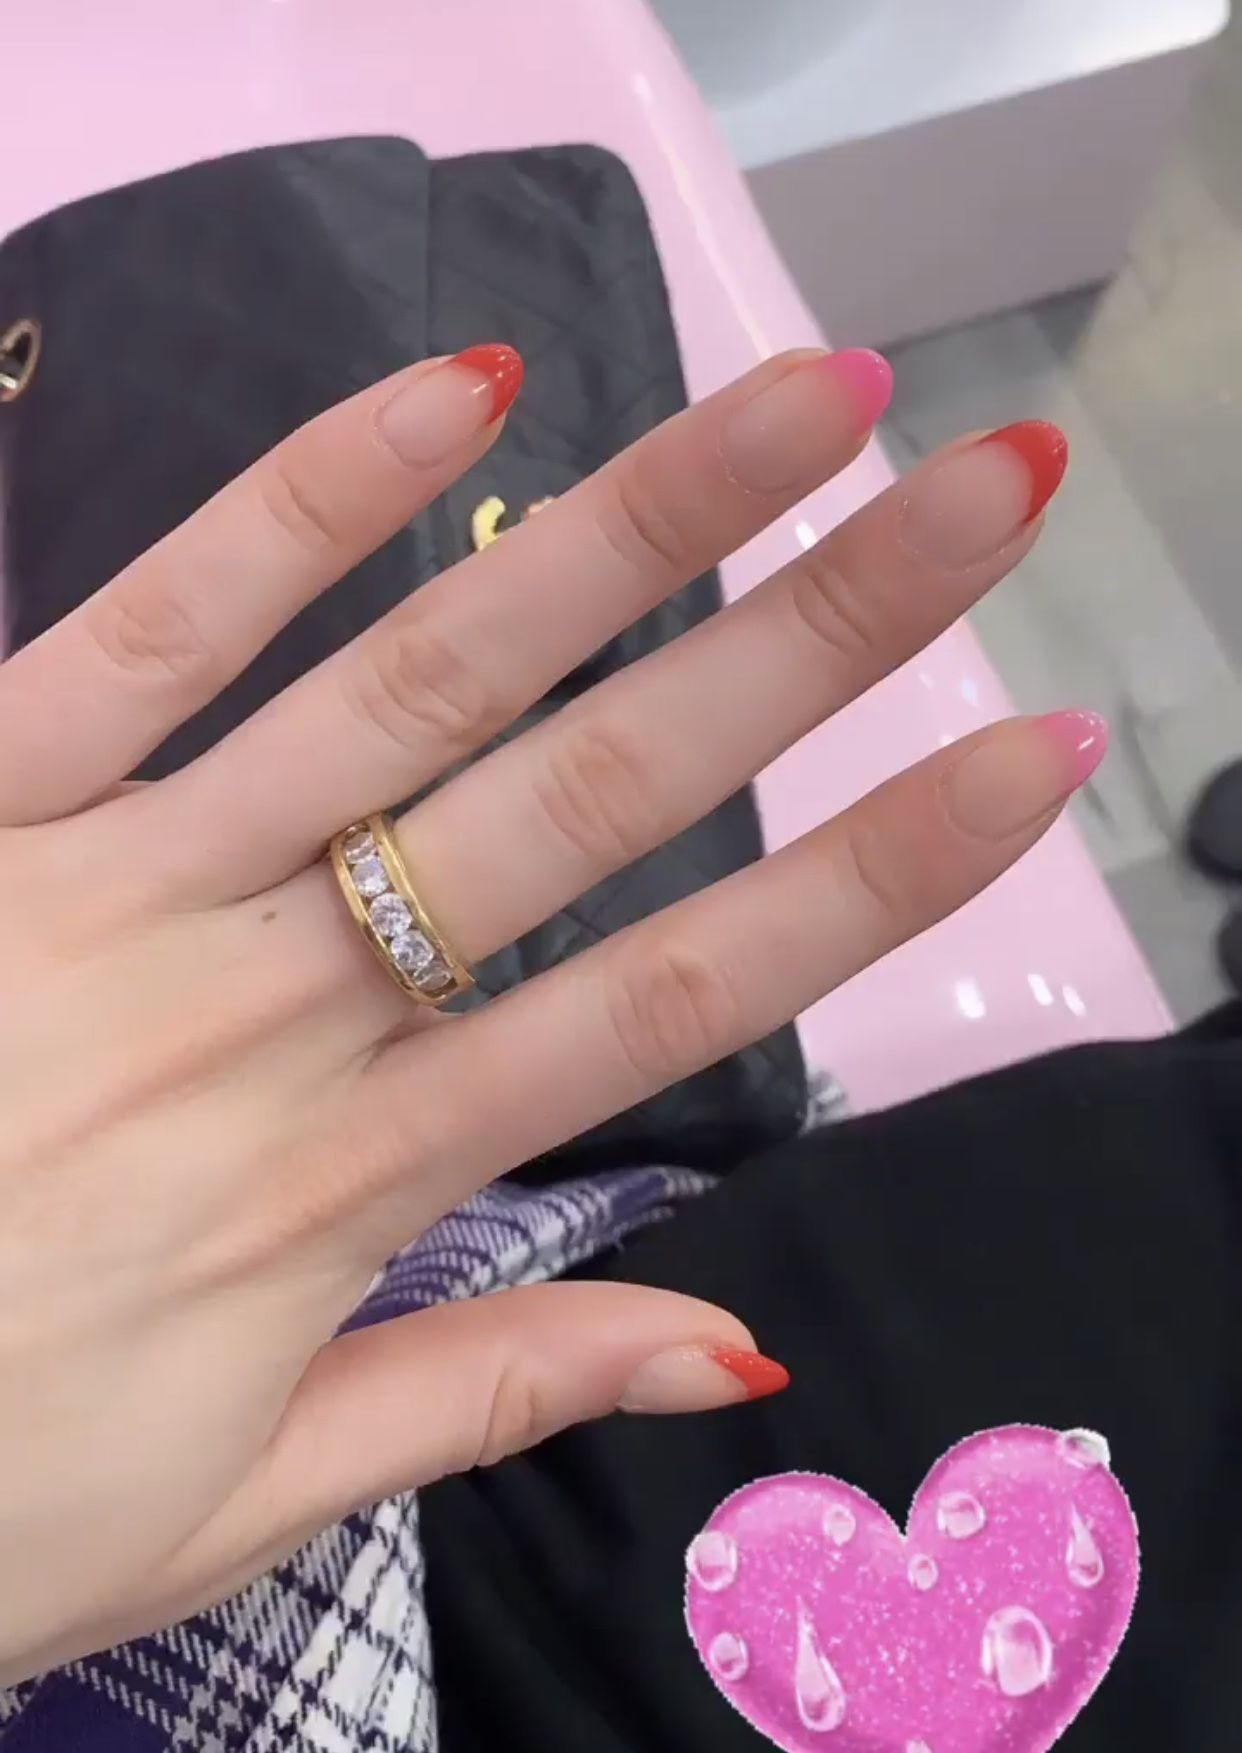 Red And Pink Oval French Tip Acrylic Nails French Tip Acrylic Nails Pink French Nails Oval Acrylic Nails